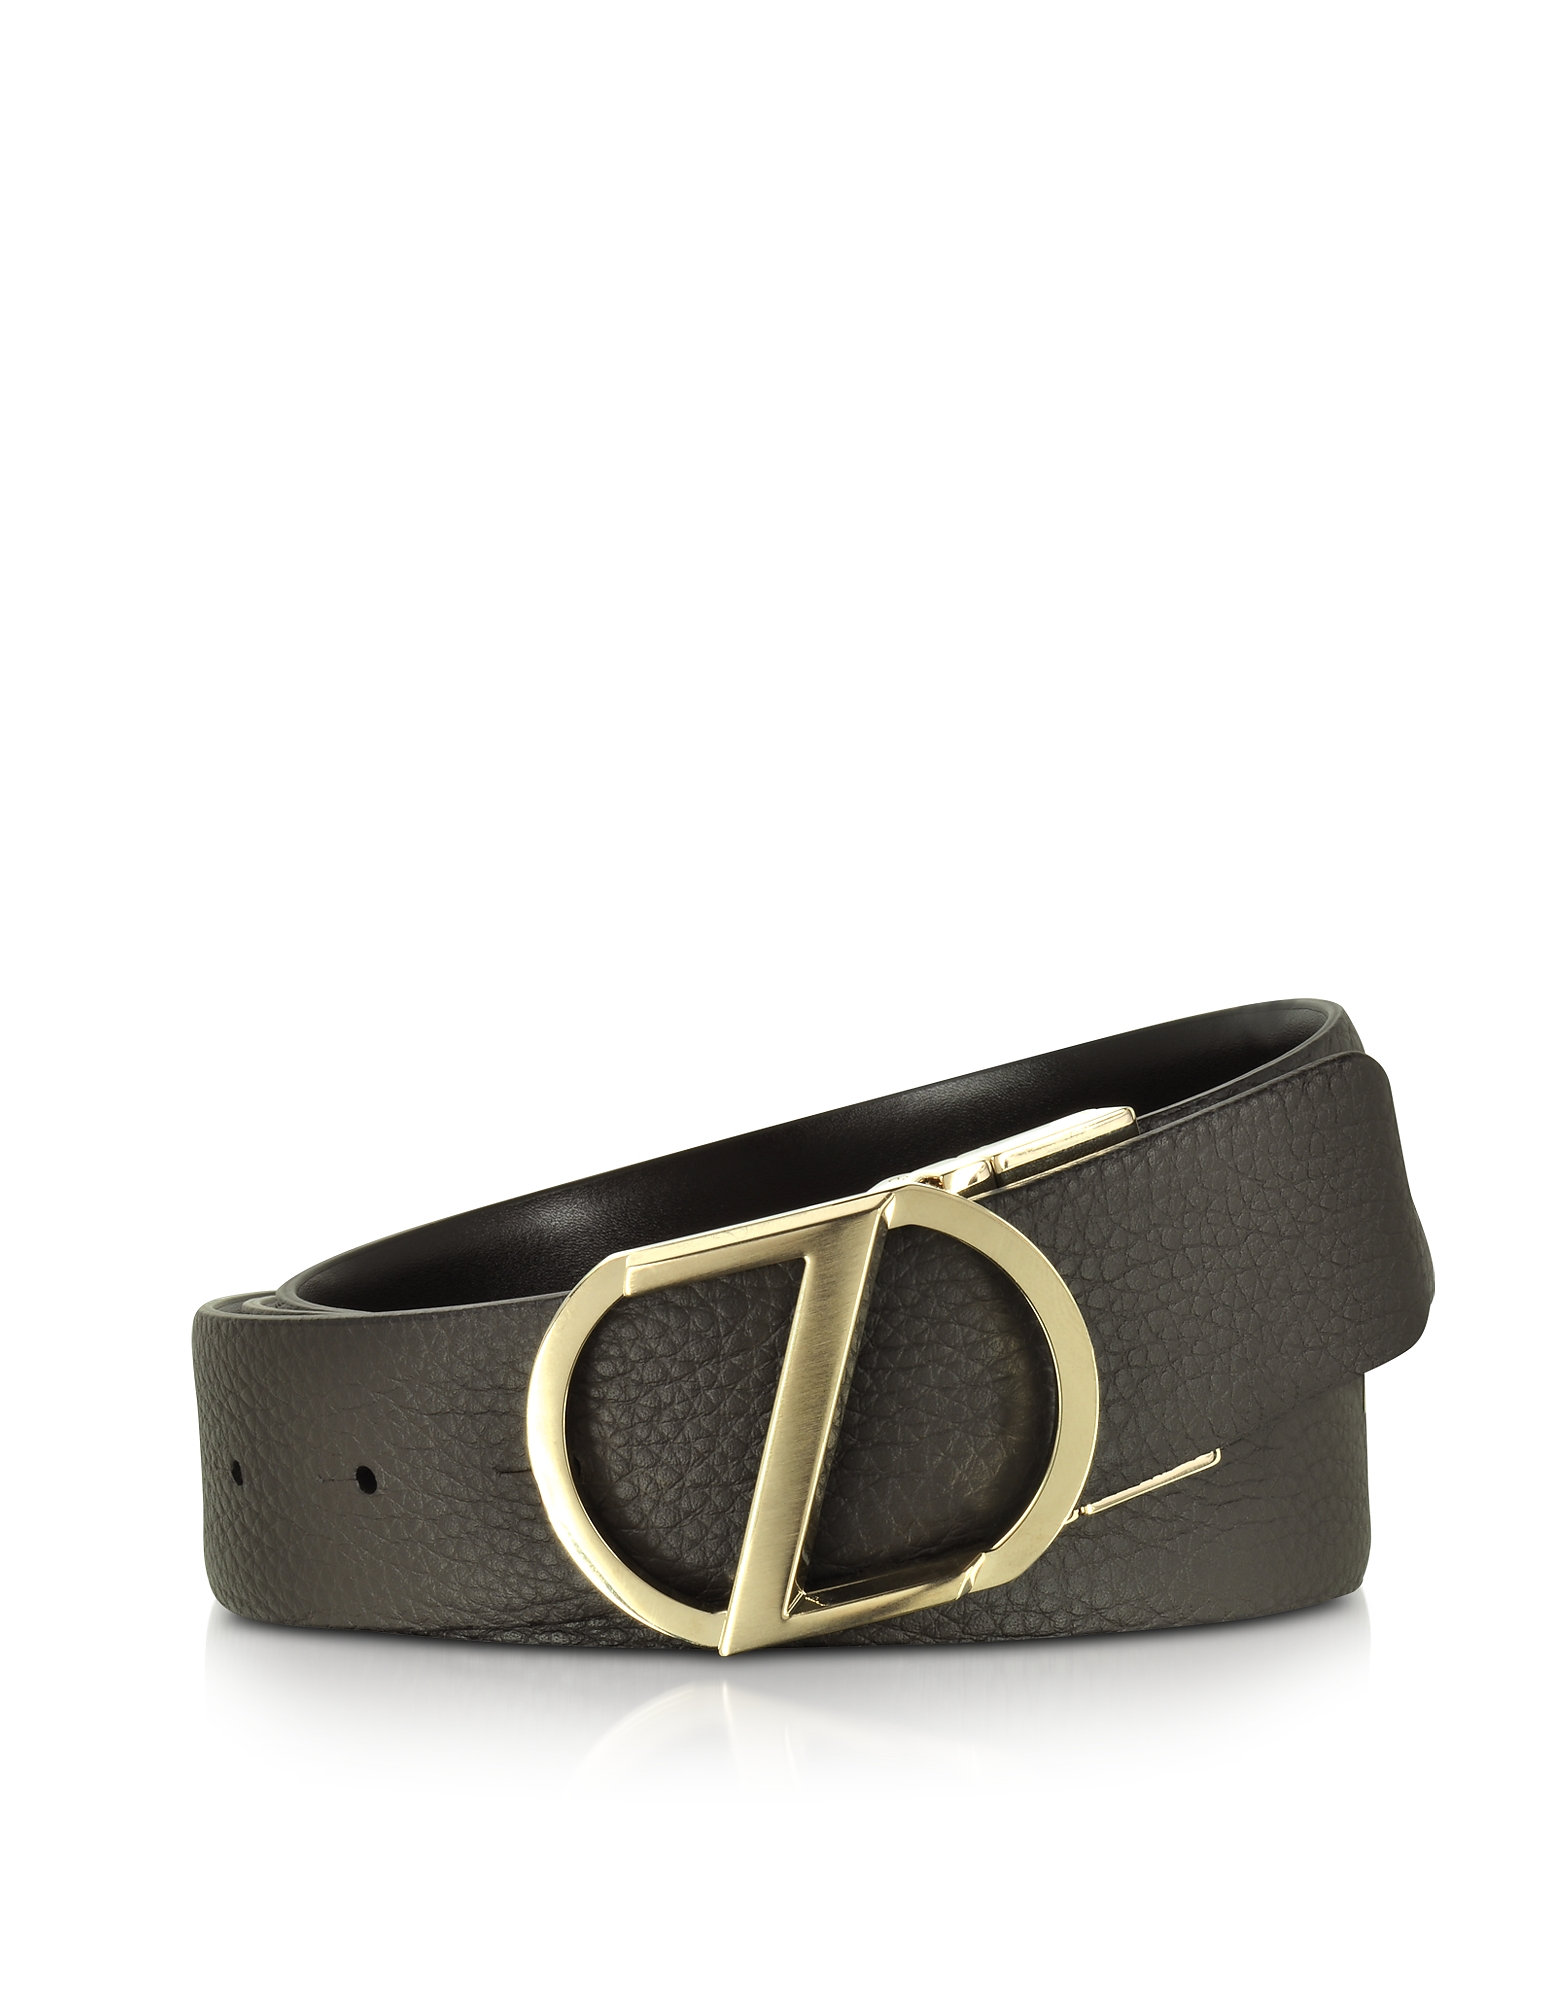 Dark Brown Leather Reversible & Adjustable Belt w/Gold-tone Signature Buckle